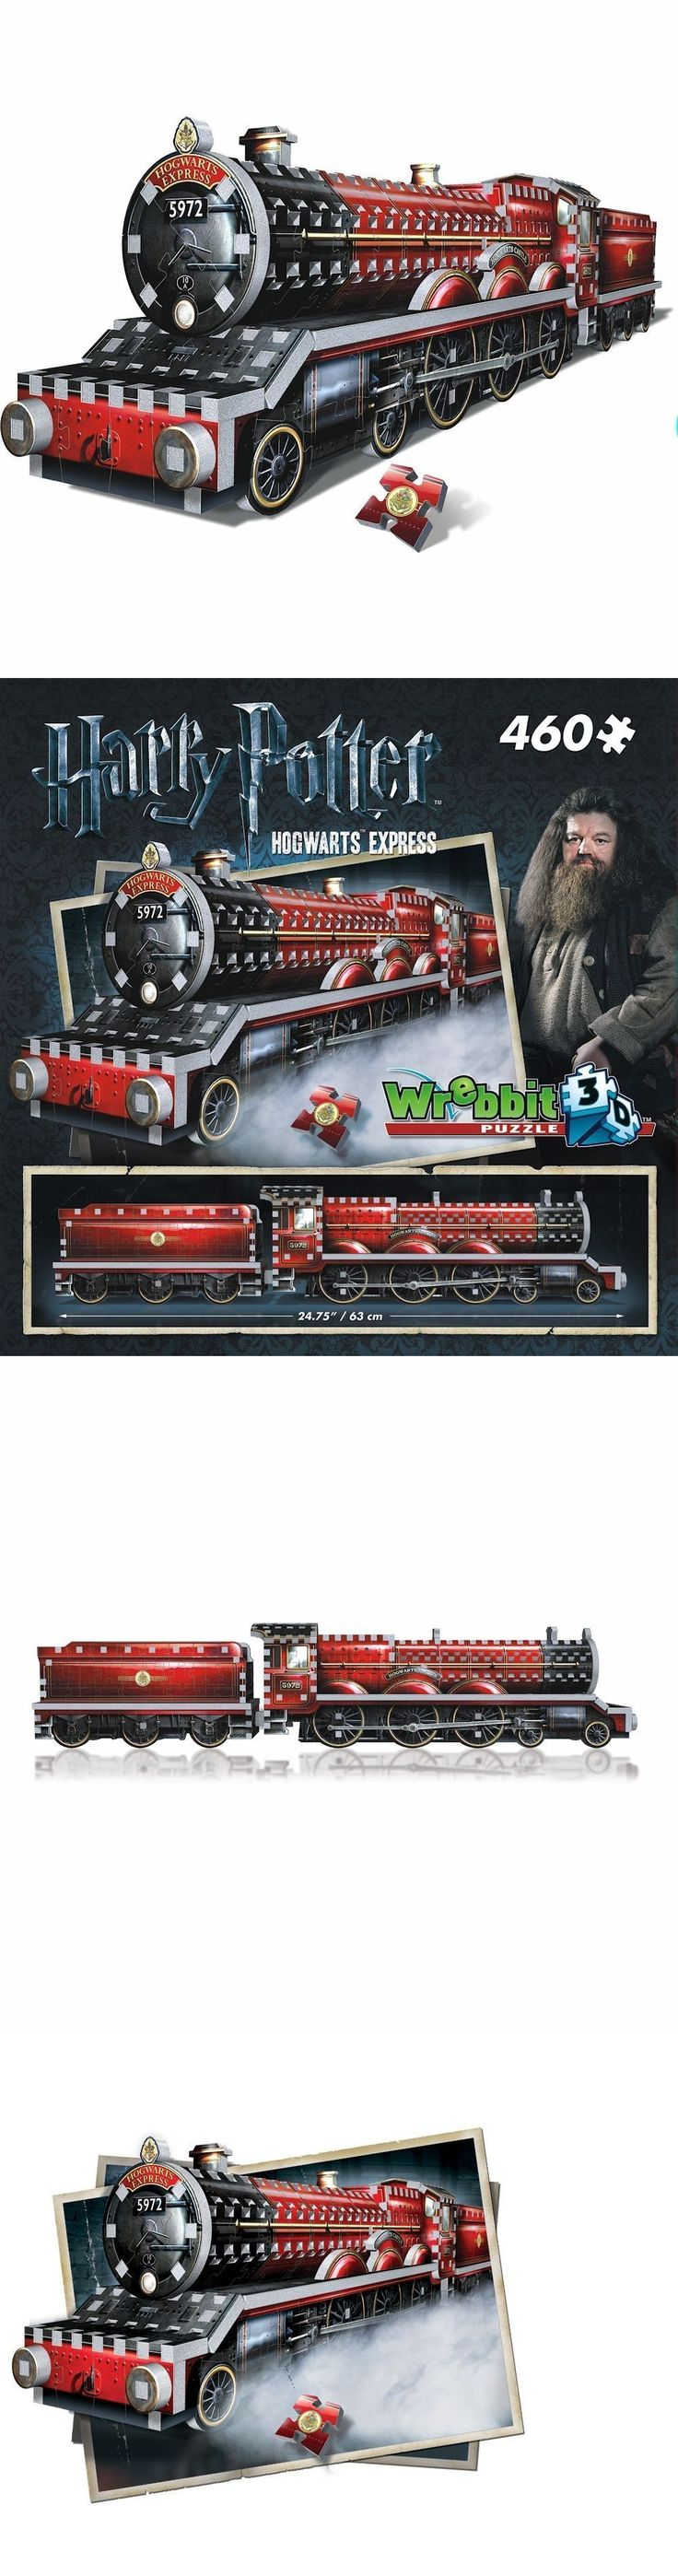 3D Puzzles 19186: Harry Potter Hogwarts Express Train Wrebbit Puzz-3D Jigsaw Puzzle 460 Pieces,New -> BUY IT NOW ONLY: $31.99 on eBay!